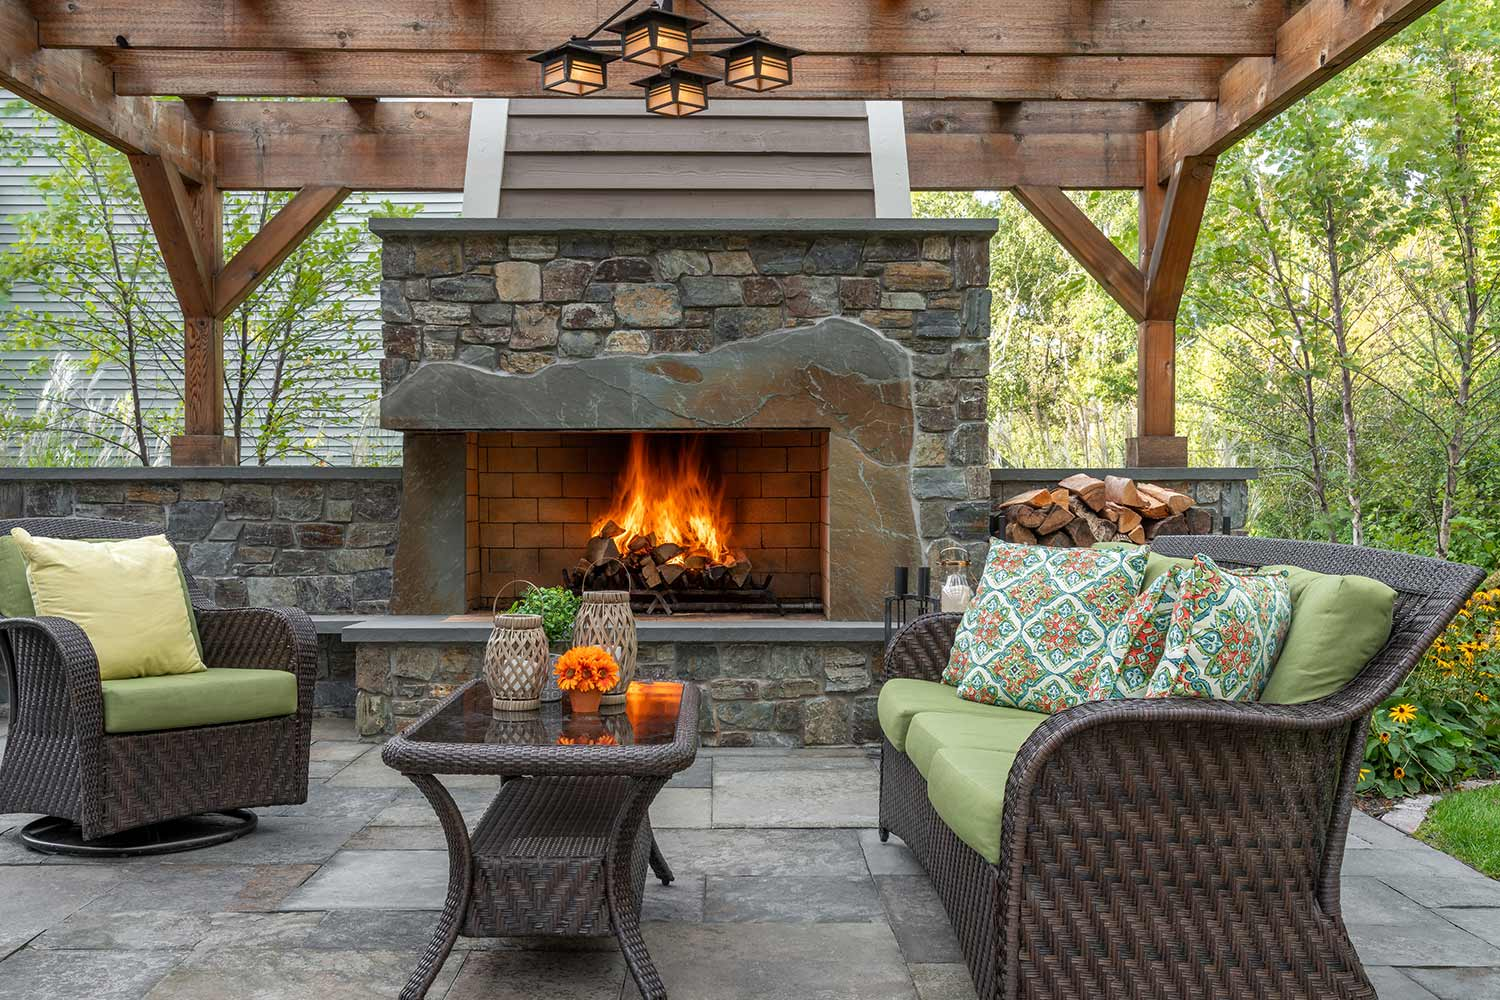 Rosemount, MN Backyard Landscaping | Southview Design on Fireplace In The Backyard id=29298